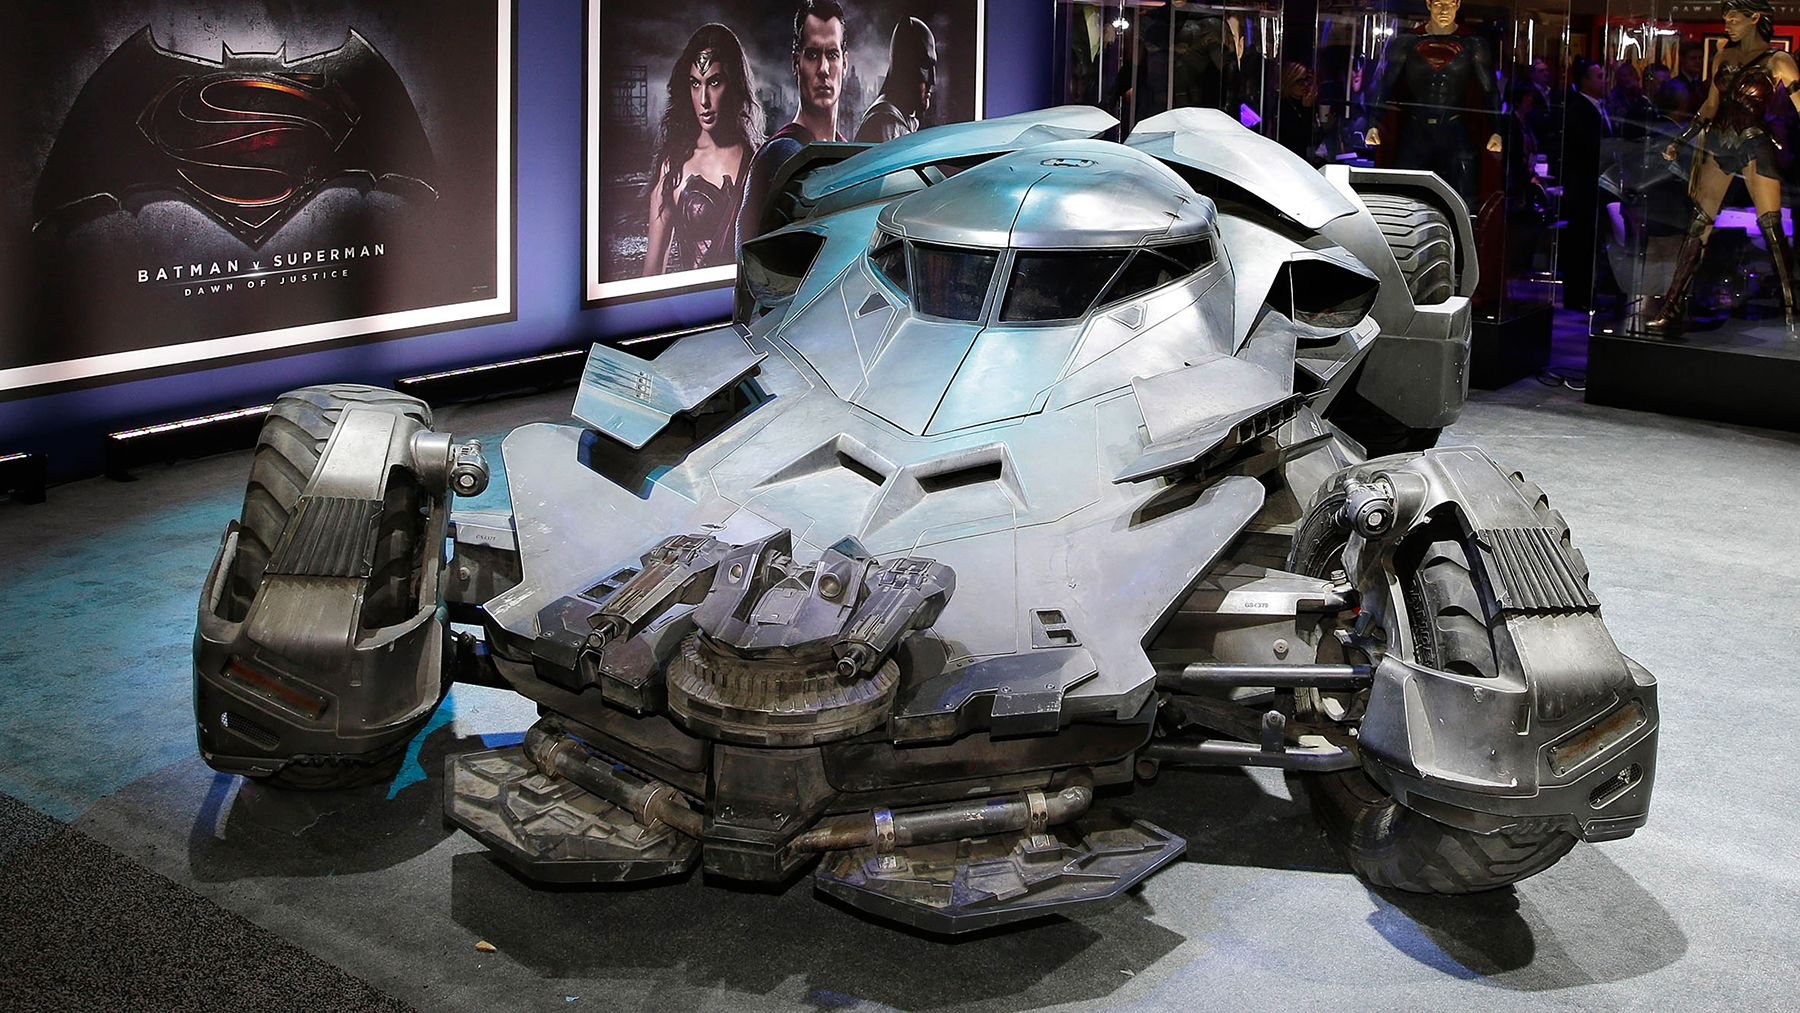 Heres Your First Look At Batman V Supermans Batmobile - Brand new batmobile revealed awesome